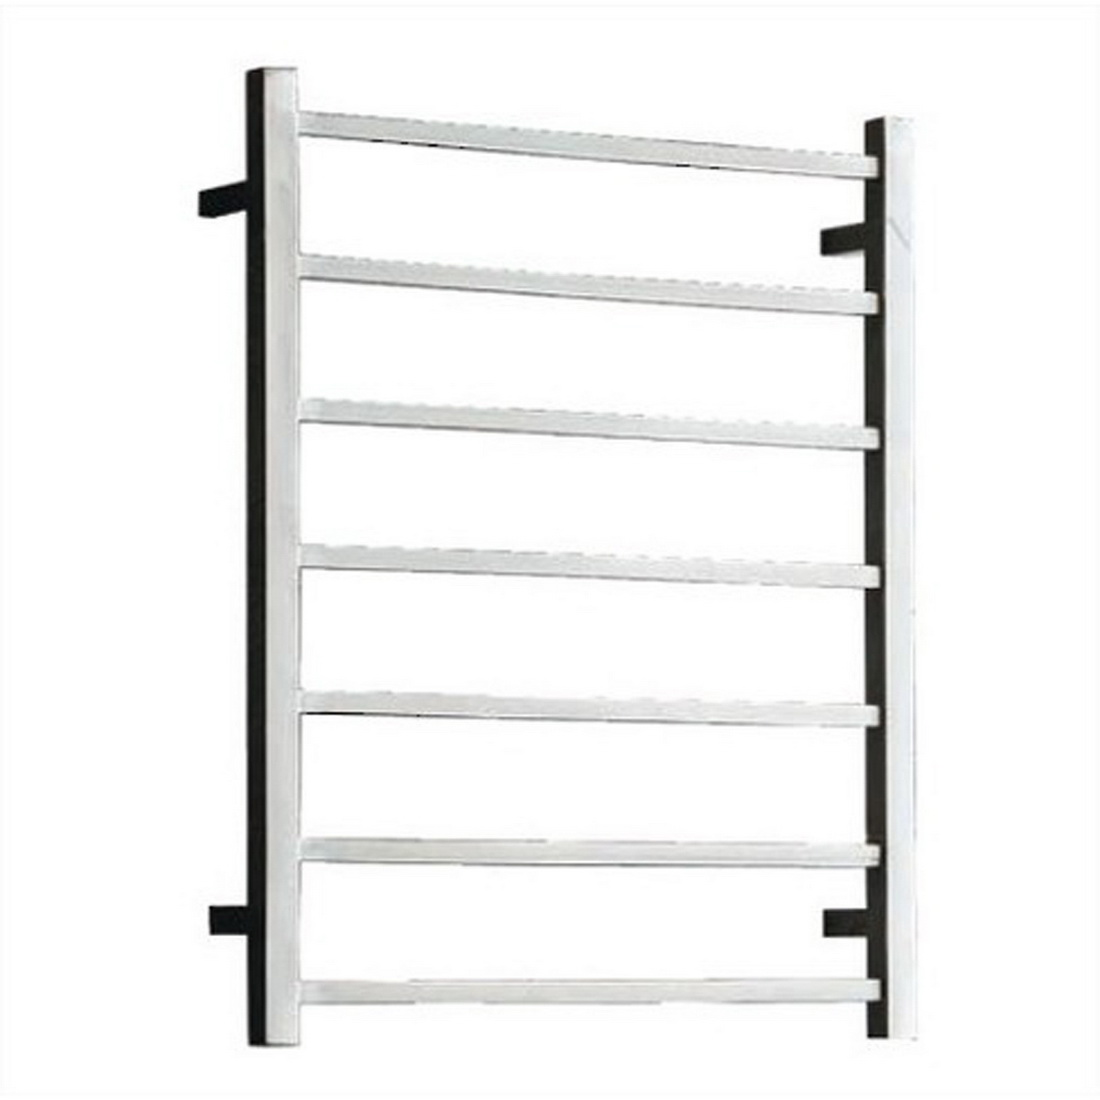 Newtech Square Heated Towel Rail Ladder 800 x 450 x 122 mm Mirror Polished 7 Bars 65 W ST78